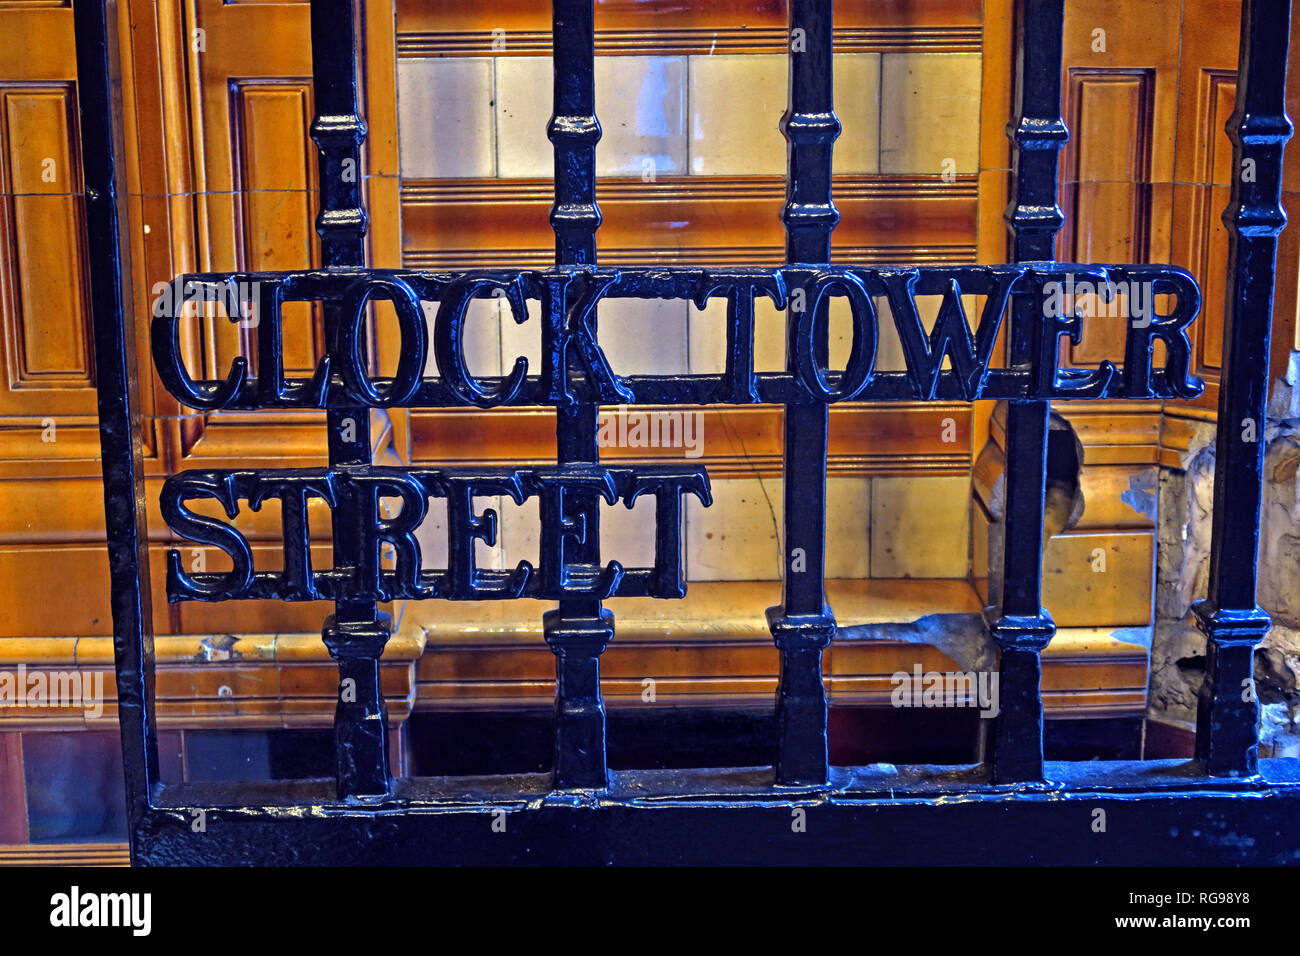 Clock Tower Entrance gate,Refuge assurance Company Head Office Building, Oxford Road, Manchester, North West England, UK, - Stock Image